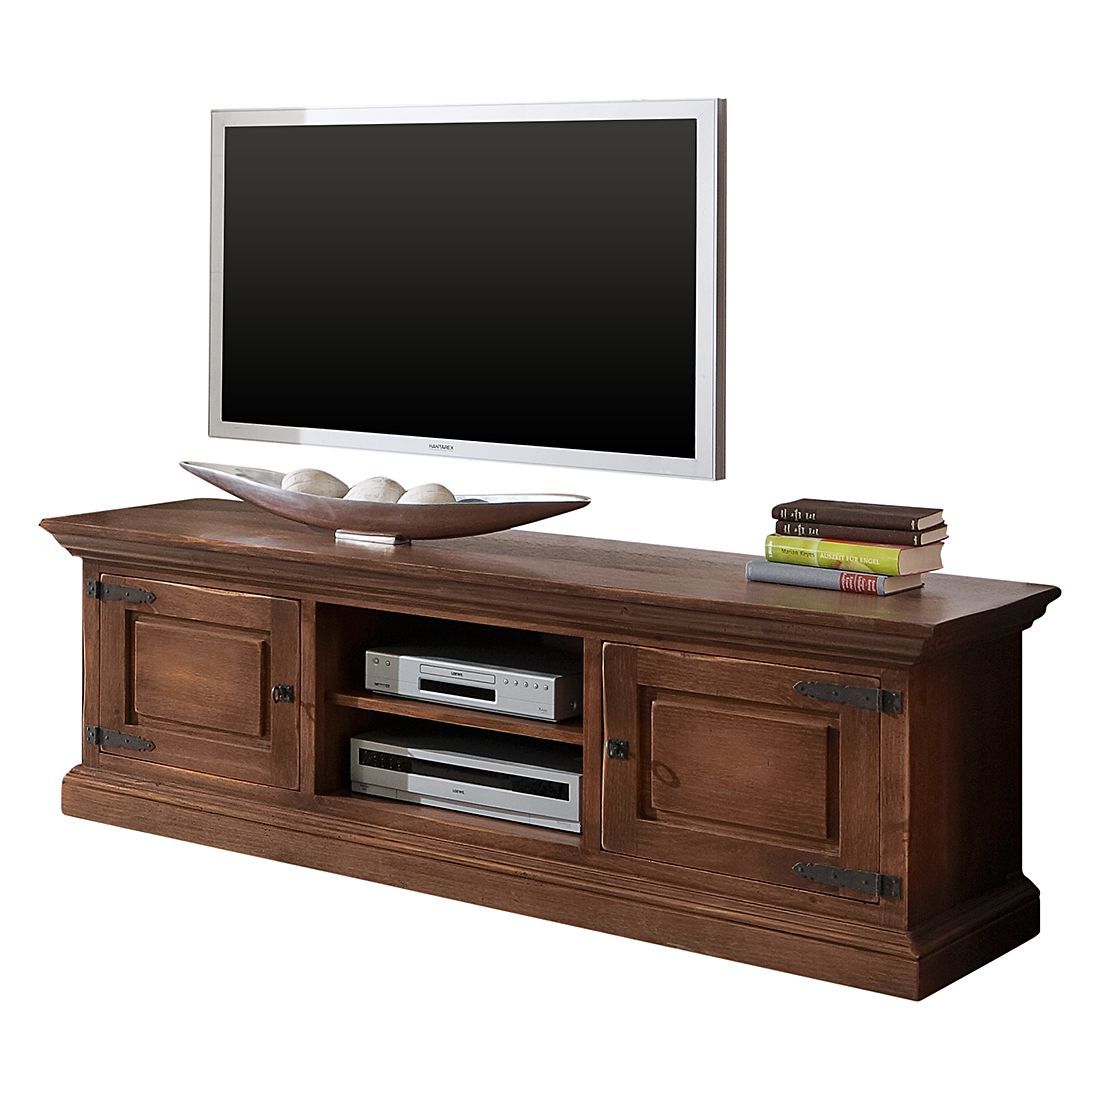 tv lowboard vicuna pinie massiv braun landhaus classic g nstig. Black Bedroom Furniture Sets. Home Design Ideas